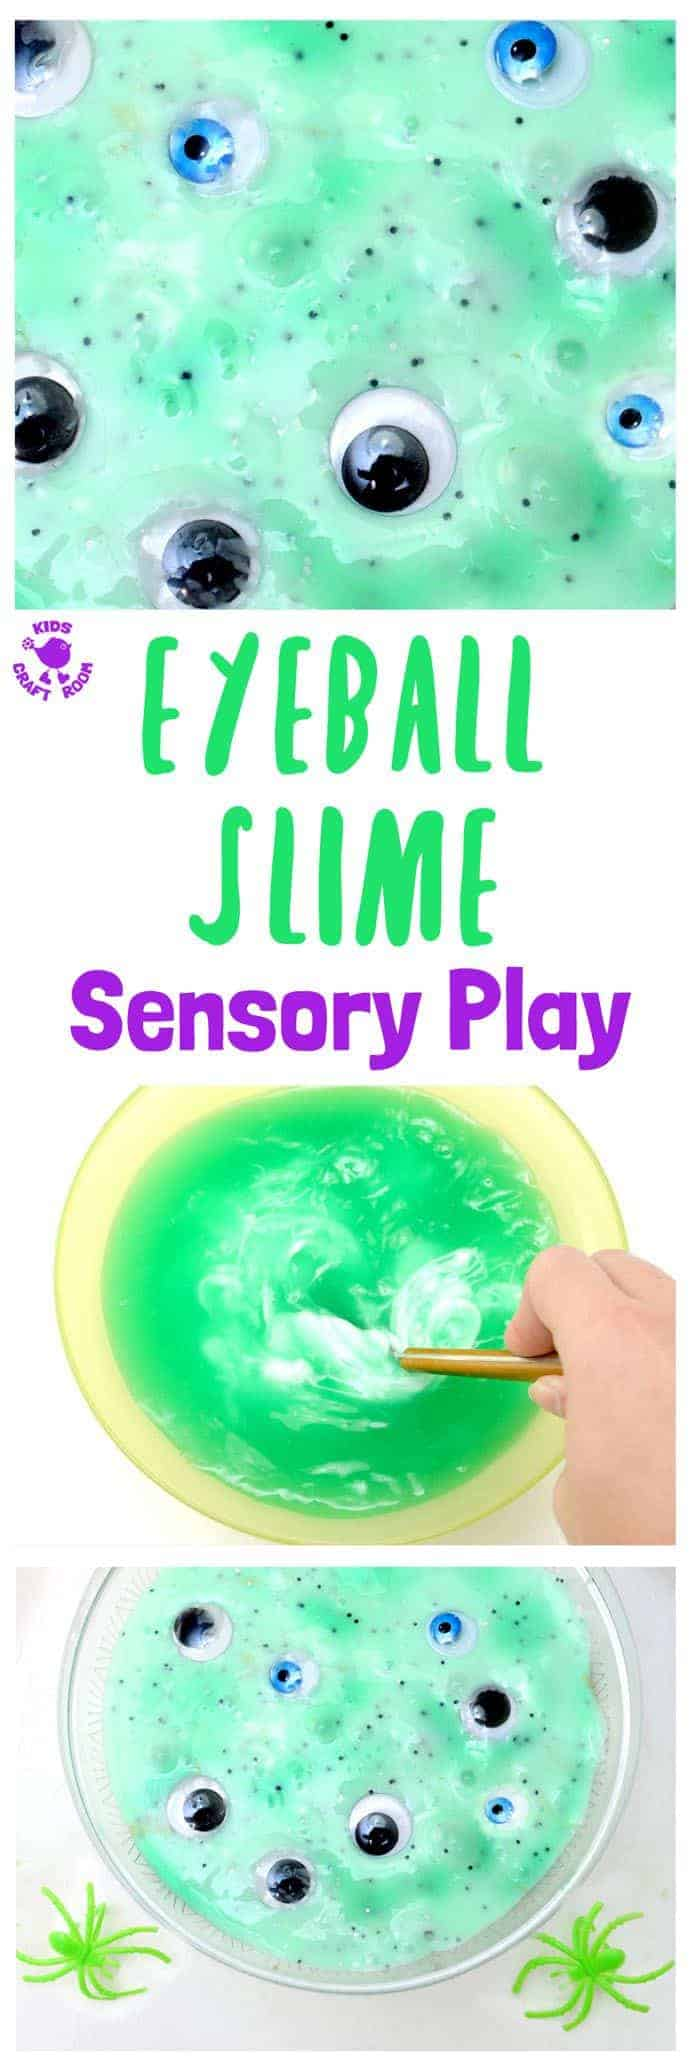 EERIE EYEBALL SLIME SENSORY PLAY - Are your kids brave enough for this Eyeball Slime sensory play activity? It's green, gooey, slimy, and gruesome! A fun Halloween sensory play idea for bold kids!